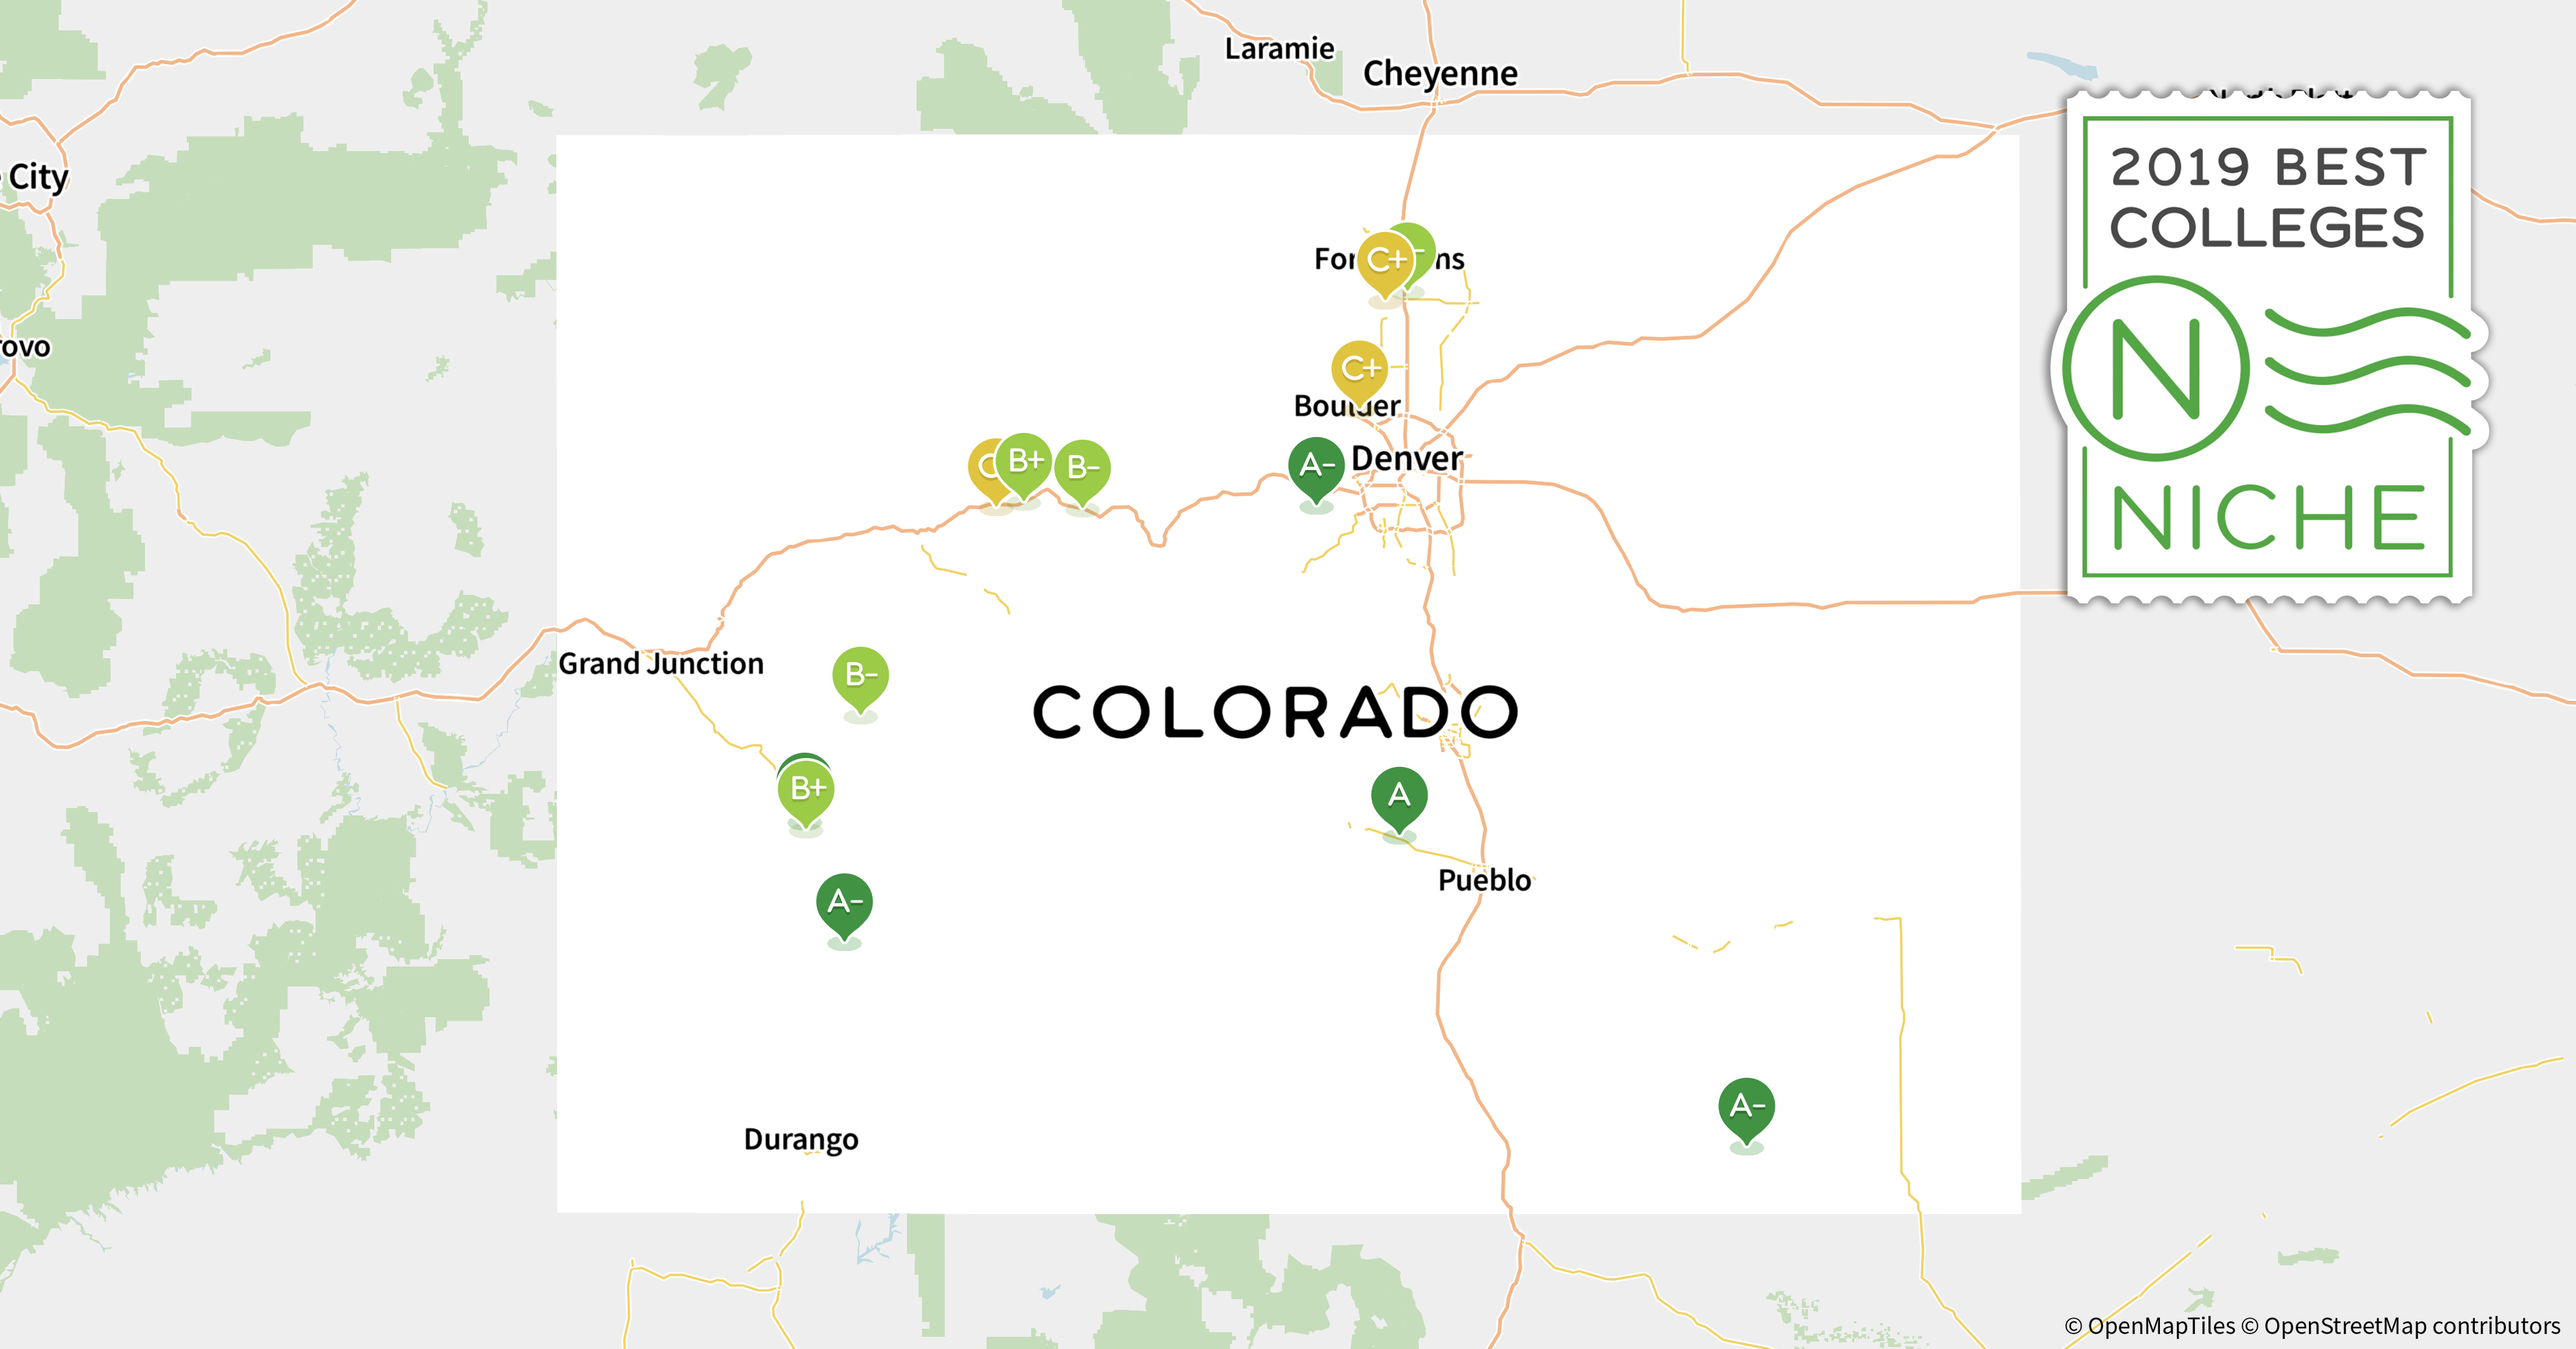 Colorado Christian University Campus Map.2019 Best Colleges In Colorado Niche